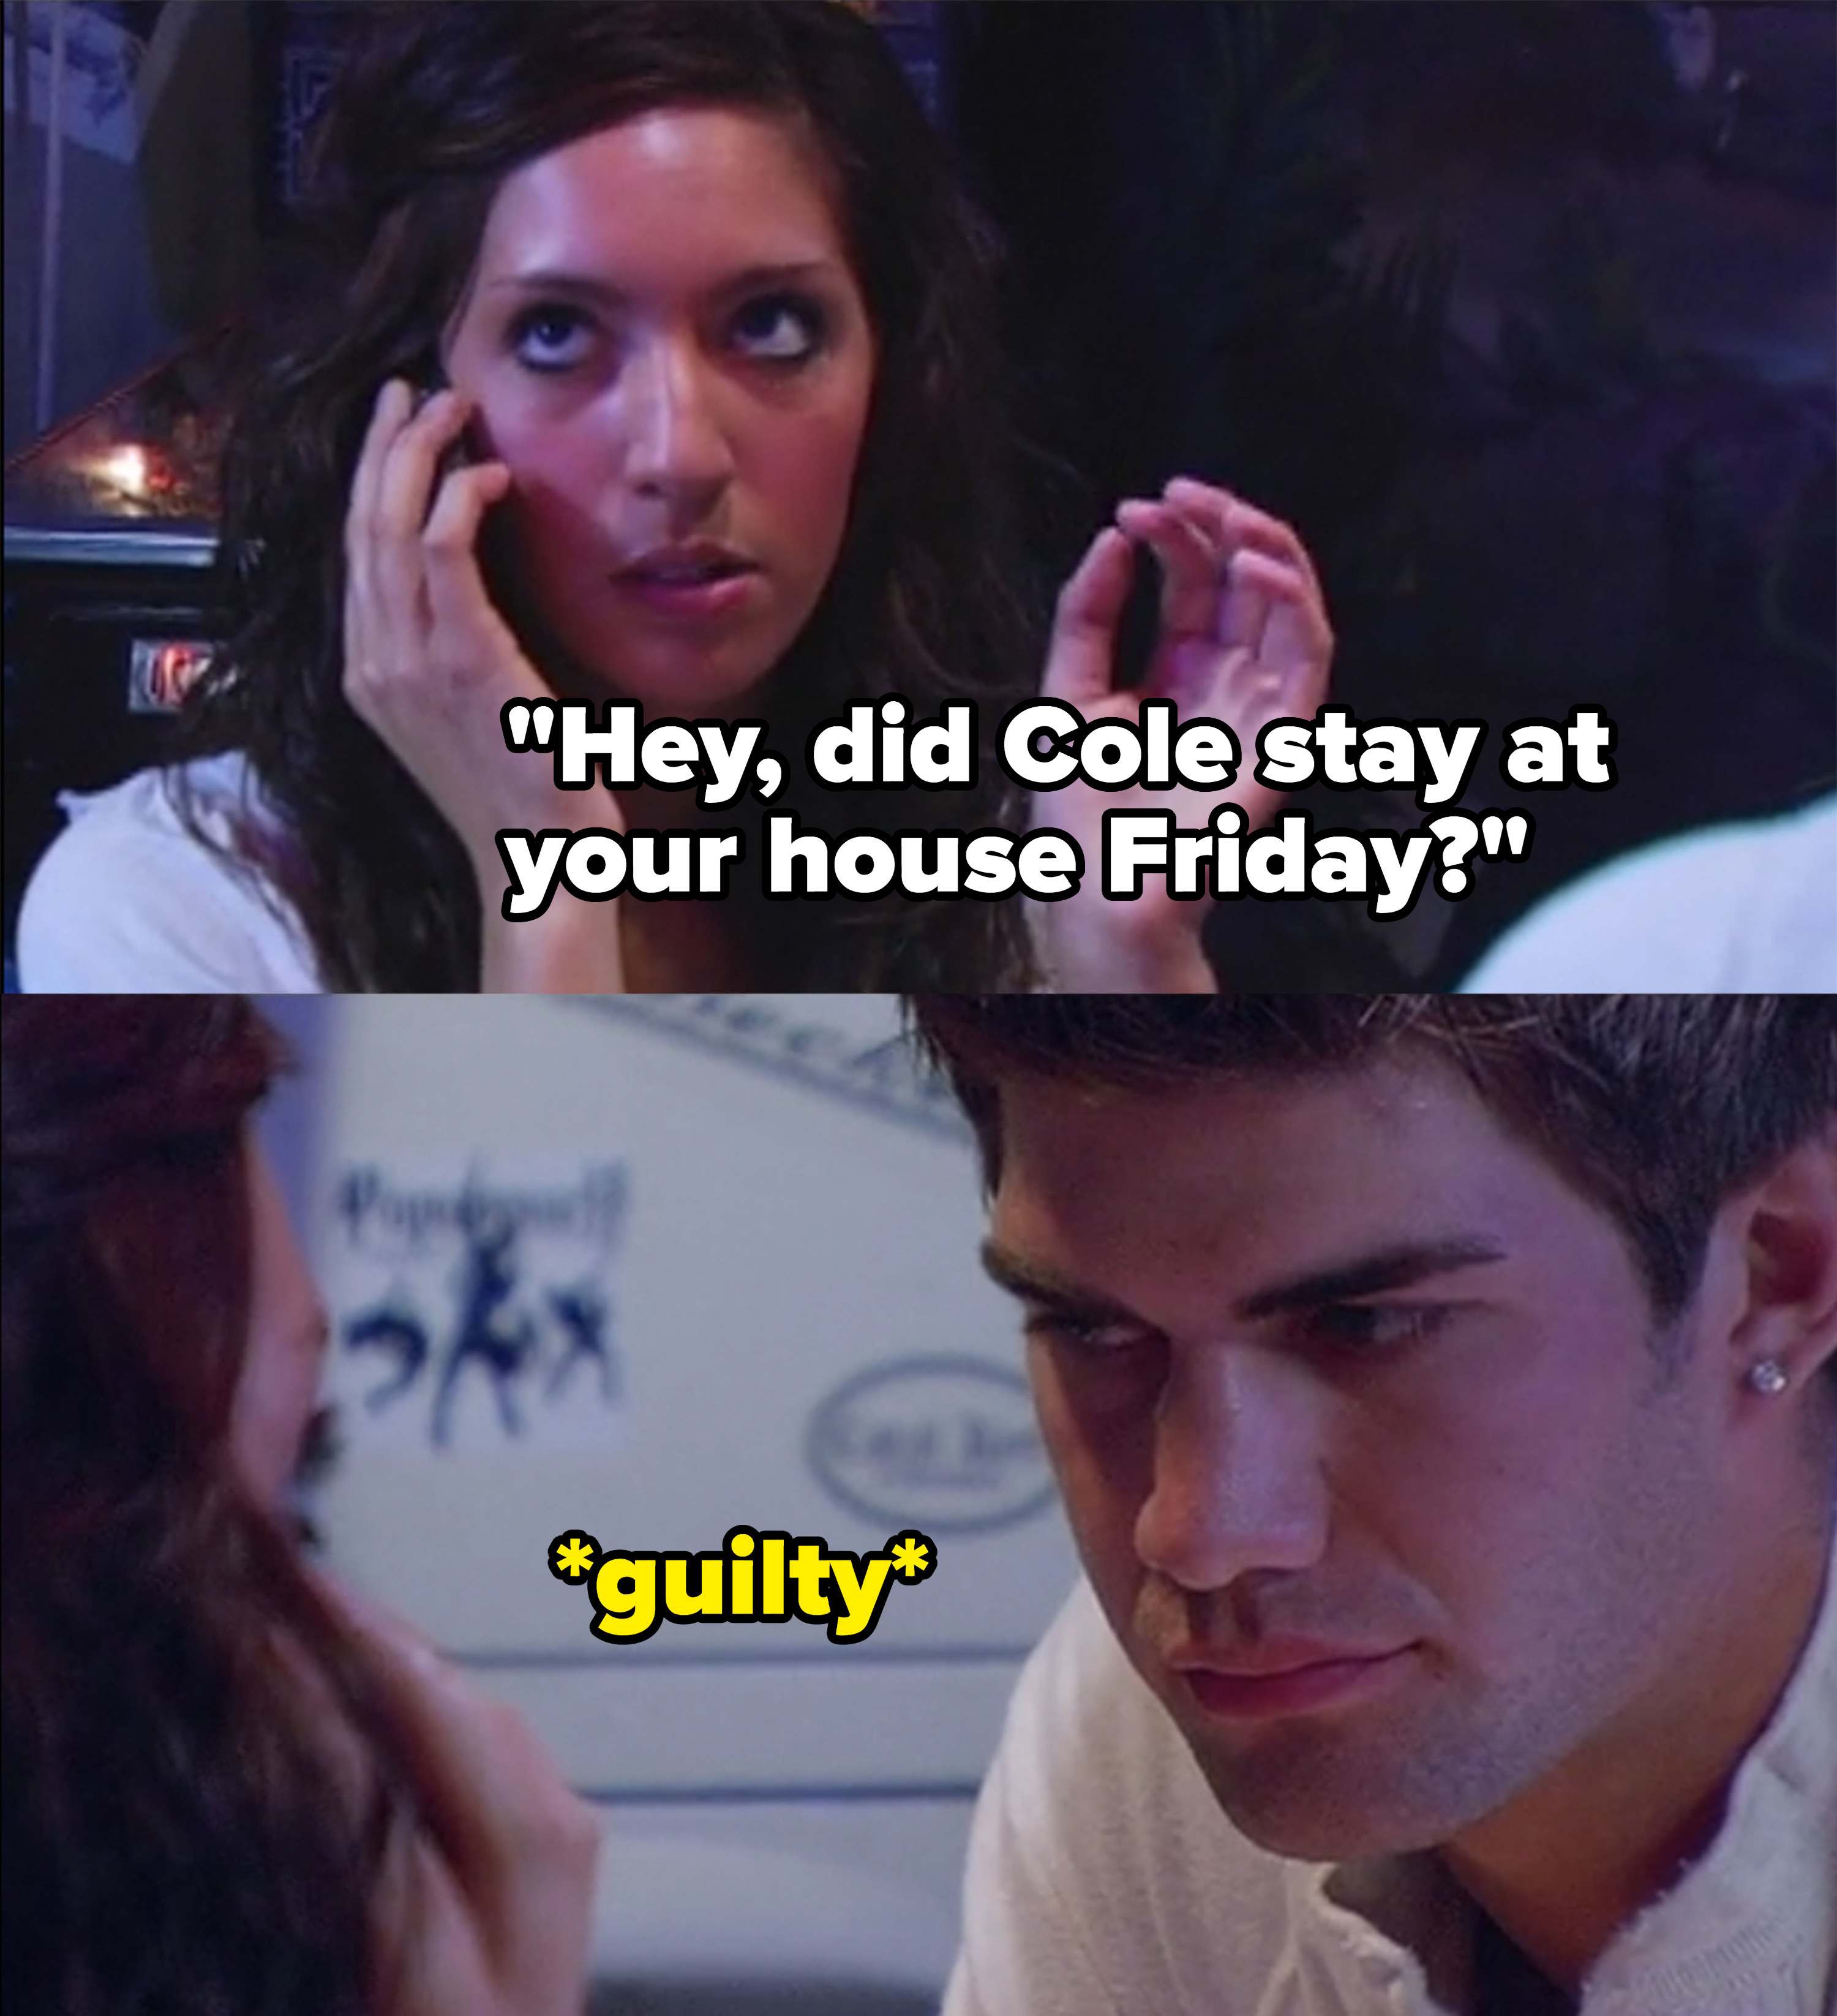 Farrah calls and asks Tina if Cole stayed at her house last Friday